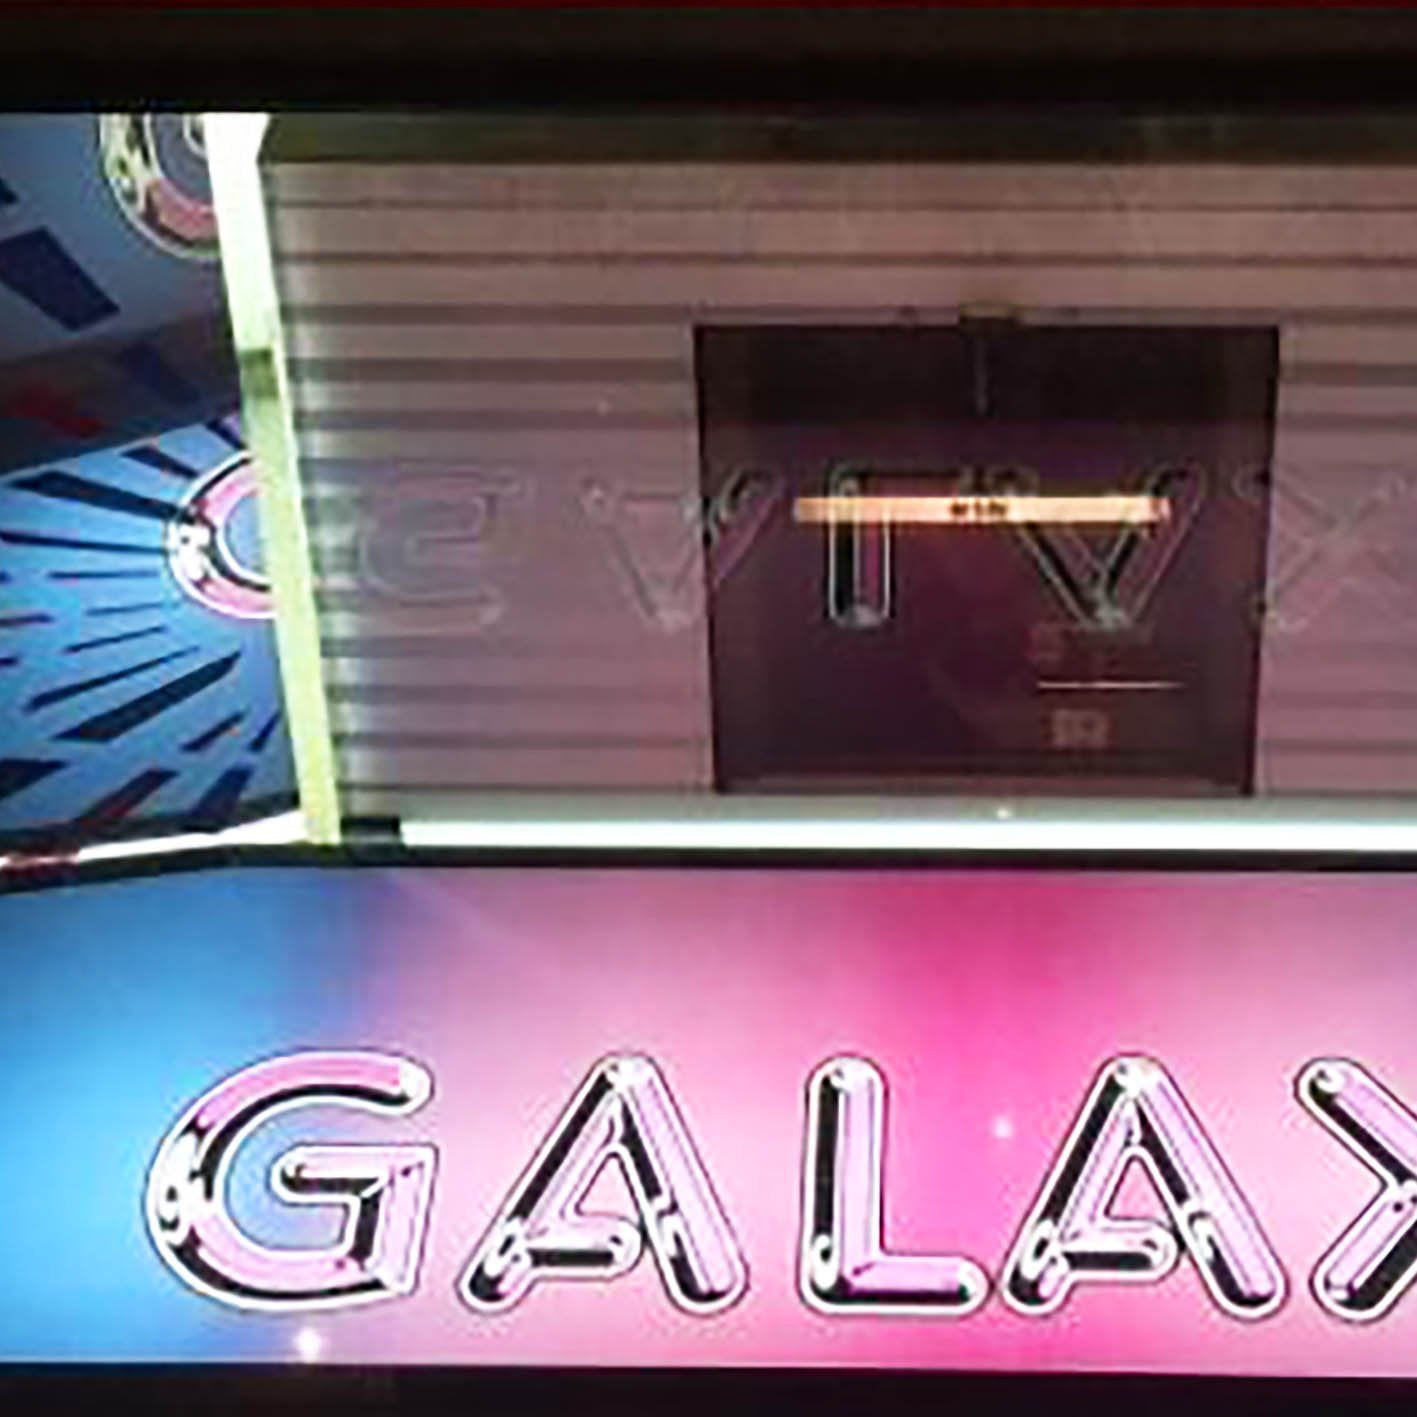 NSM Galaxy CD Jukebox 'Coming Soon'